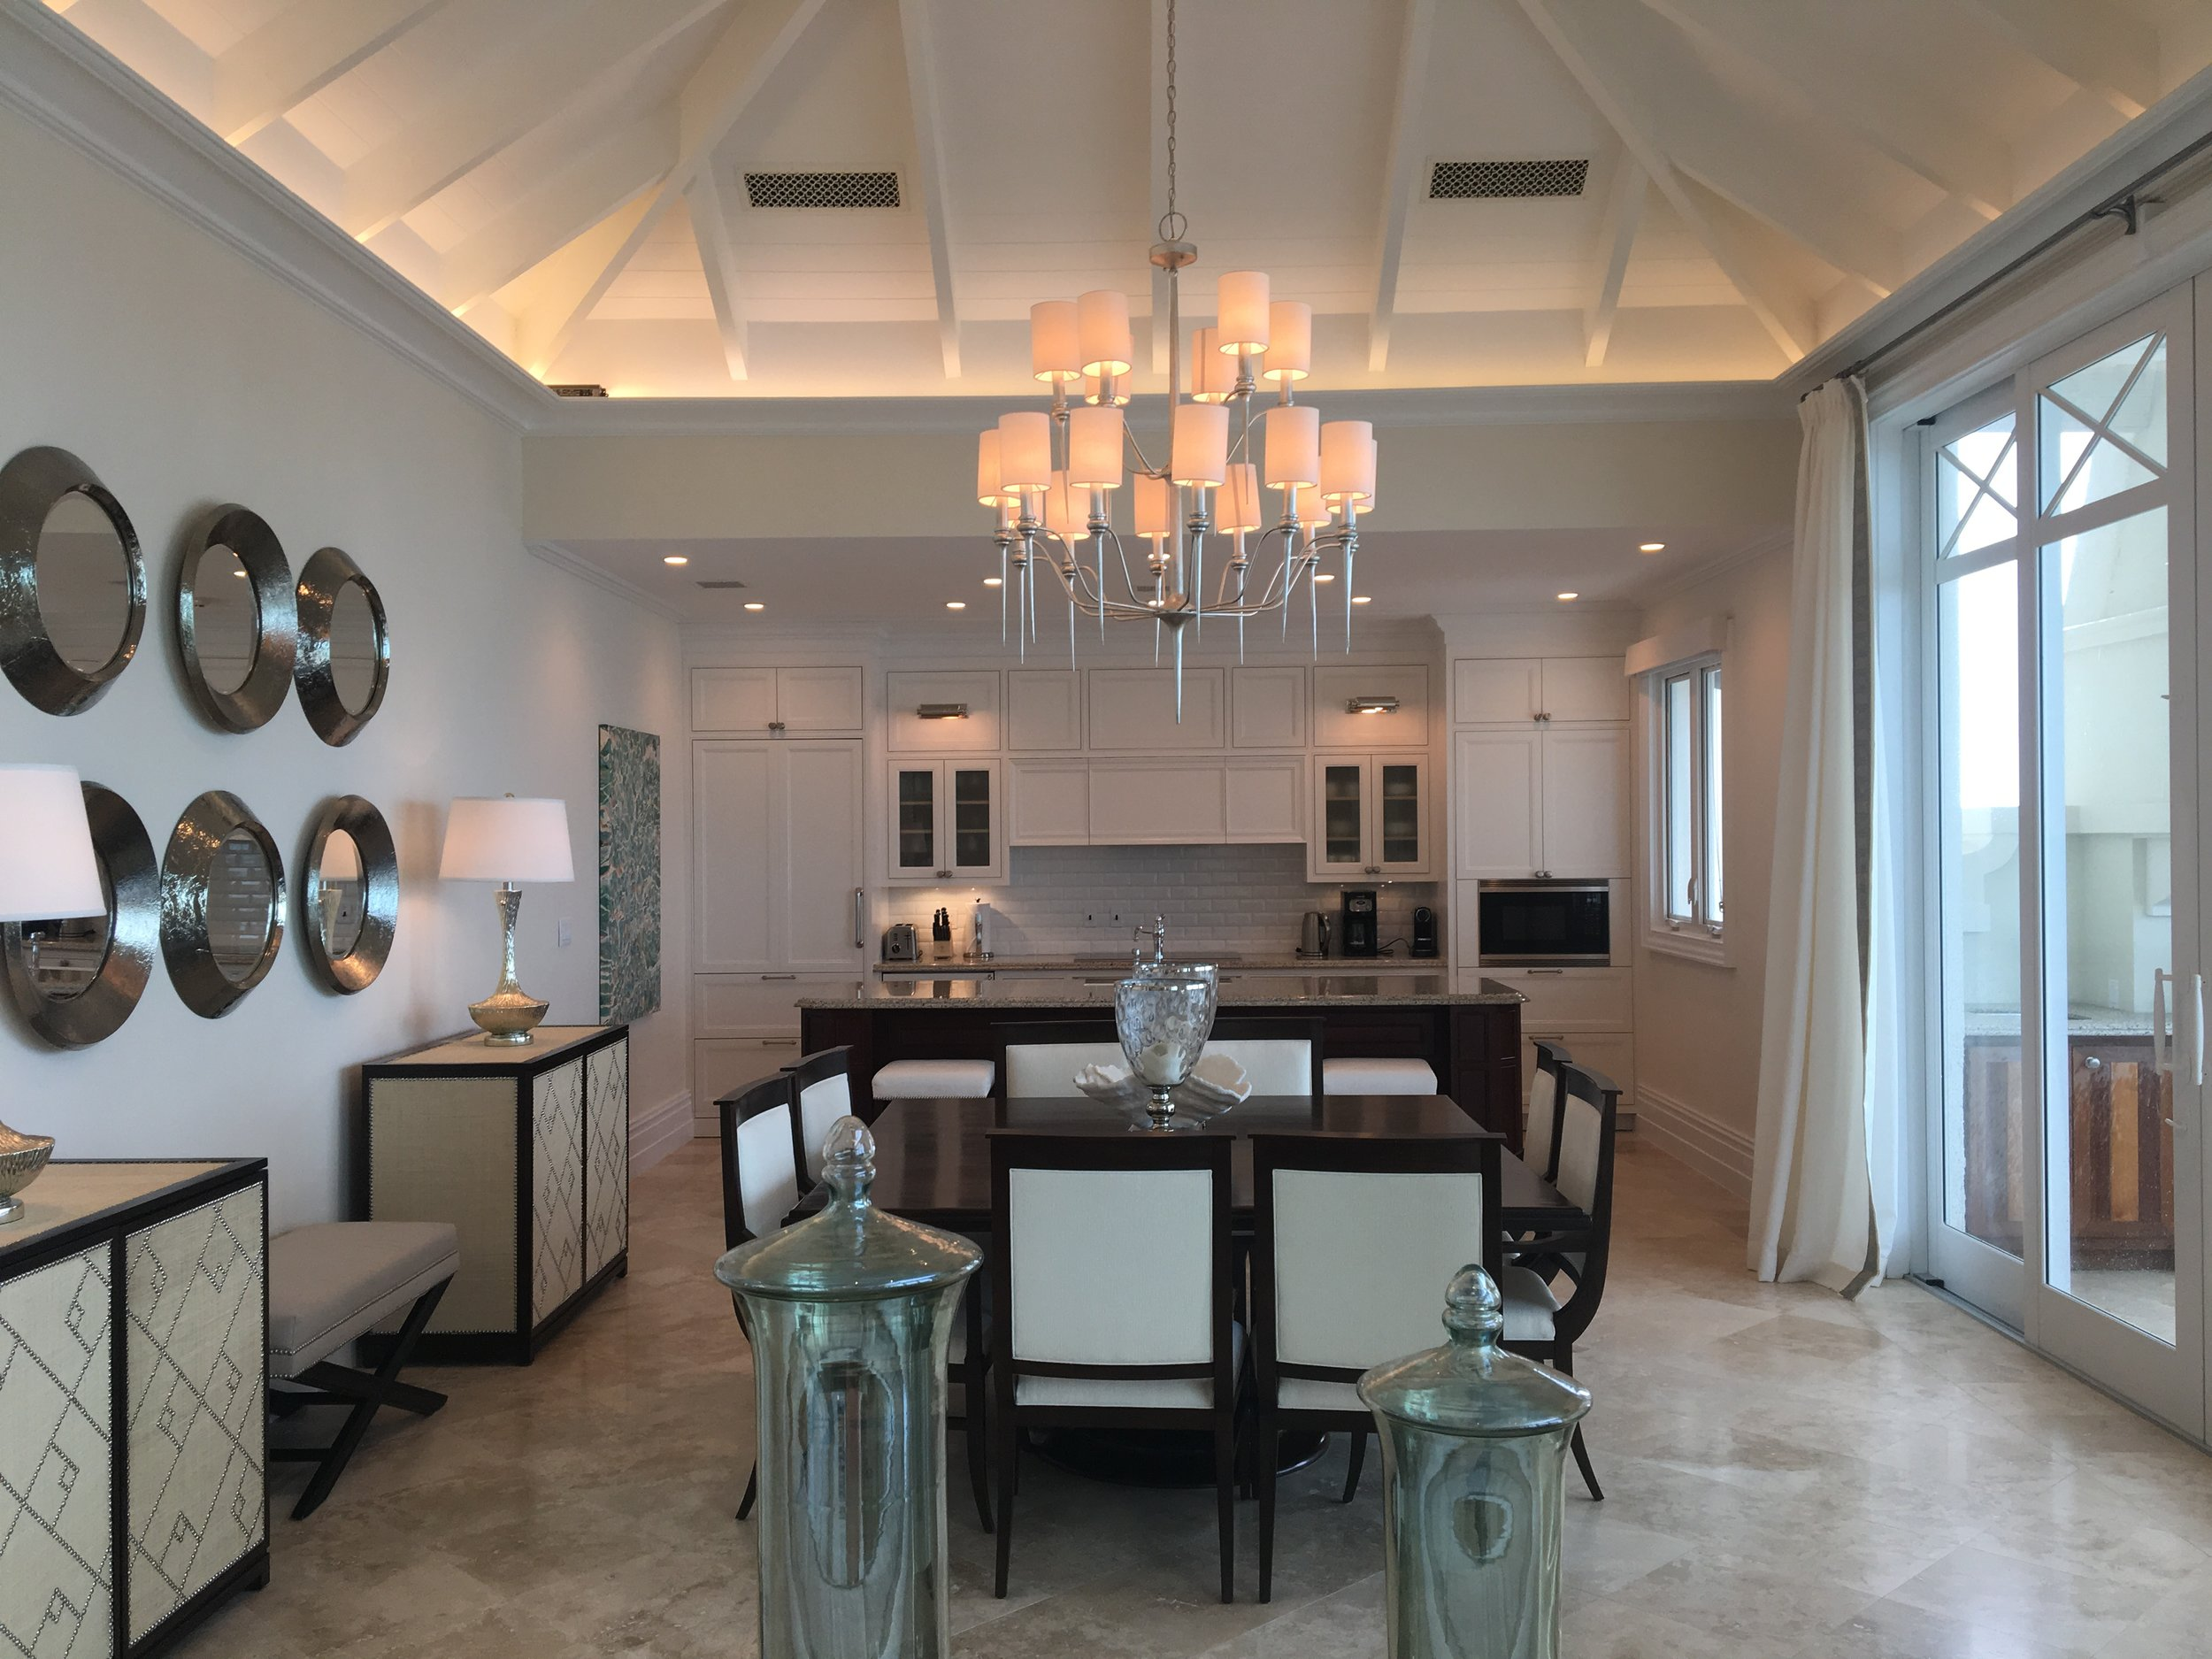 The kitchen of the penthouse suite. Balconies for days, several living spaces and it can be configured for different bedroom options.